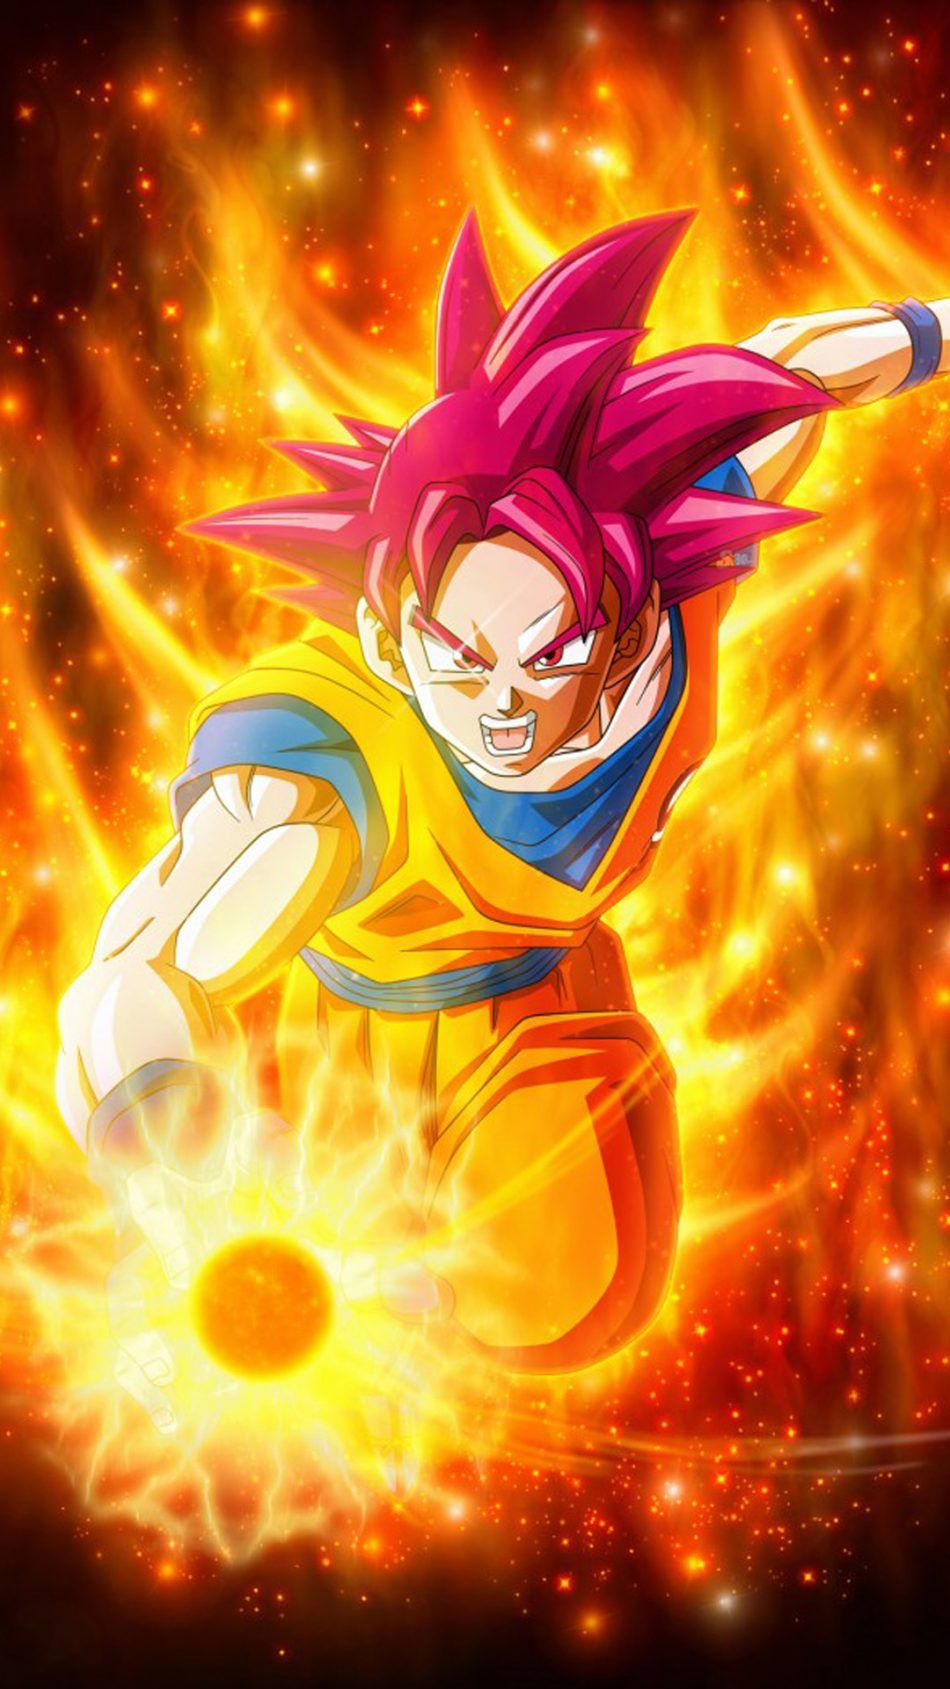 Dragonball Phone Wallpaper Hd Download Super Saiyan God In Dragon Ball Super Free Pure 4k Dragon Bal In 2020 Anime Dragon Ball Super Dragon Ball Dragon Ball Art Goku